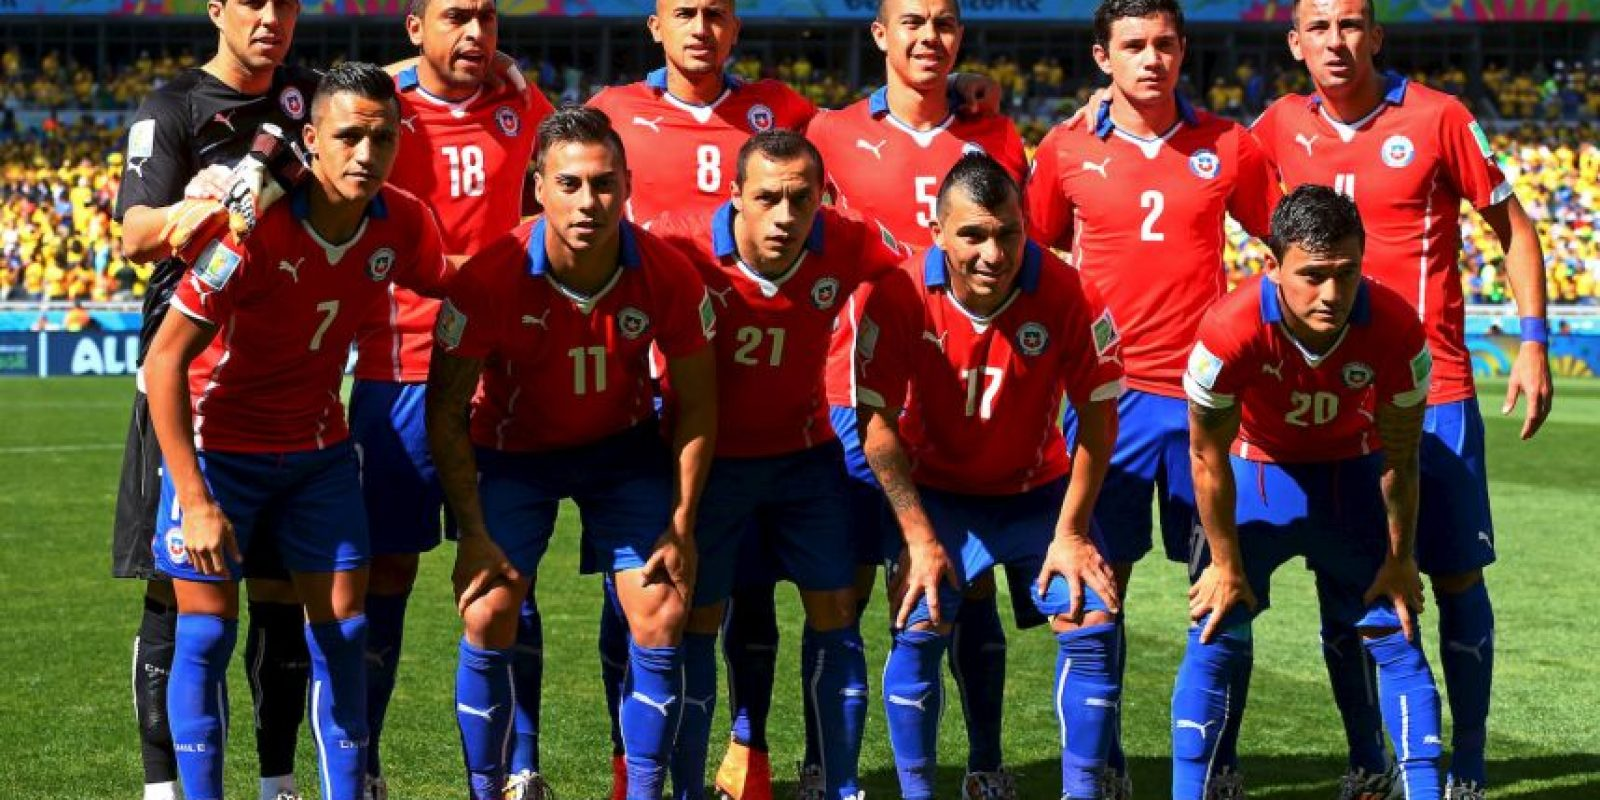 Chile arrancó en gran manera las Eliminatorias de Conmebol rumbo a Rusia 2018. Foto: Getty Images